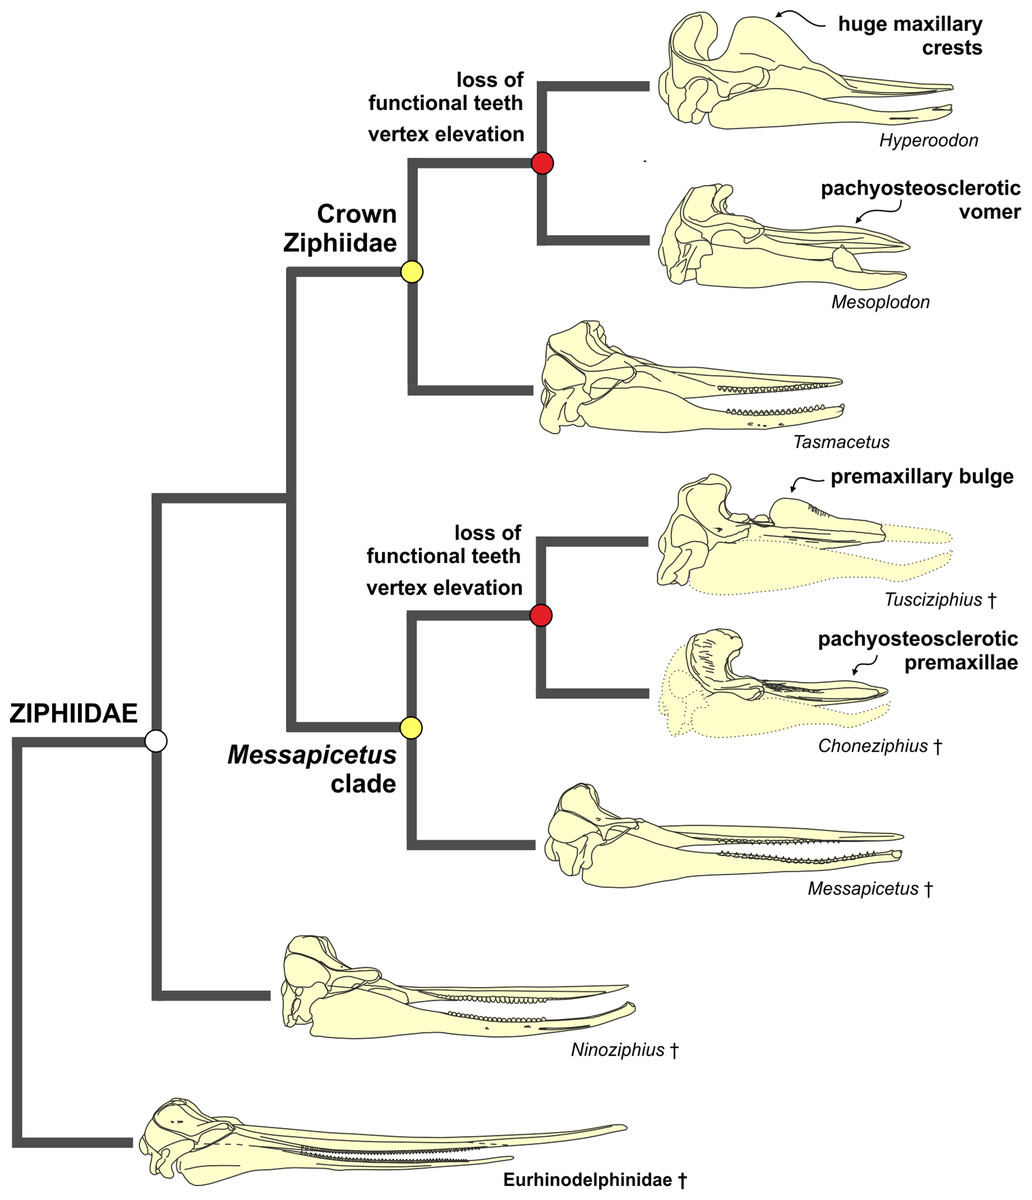 New Beaked Whales From The Late Miocene Of Peru And